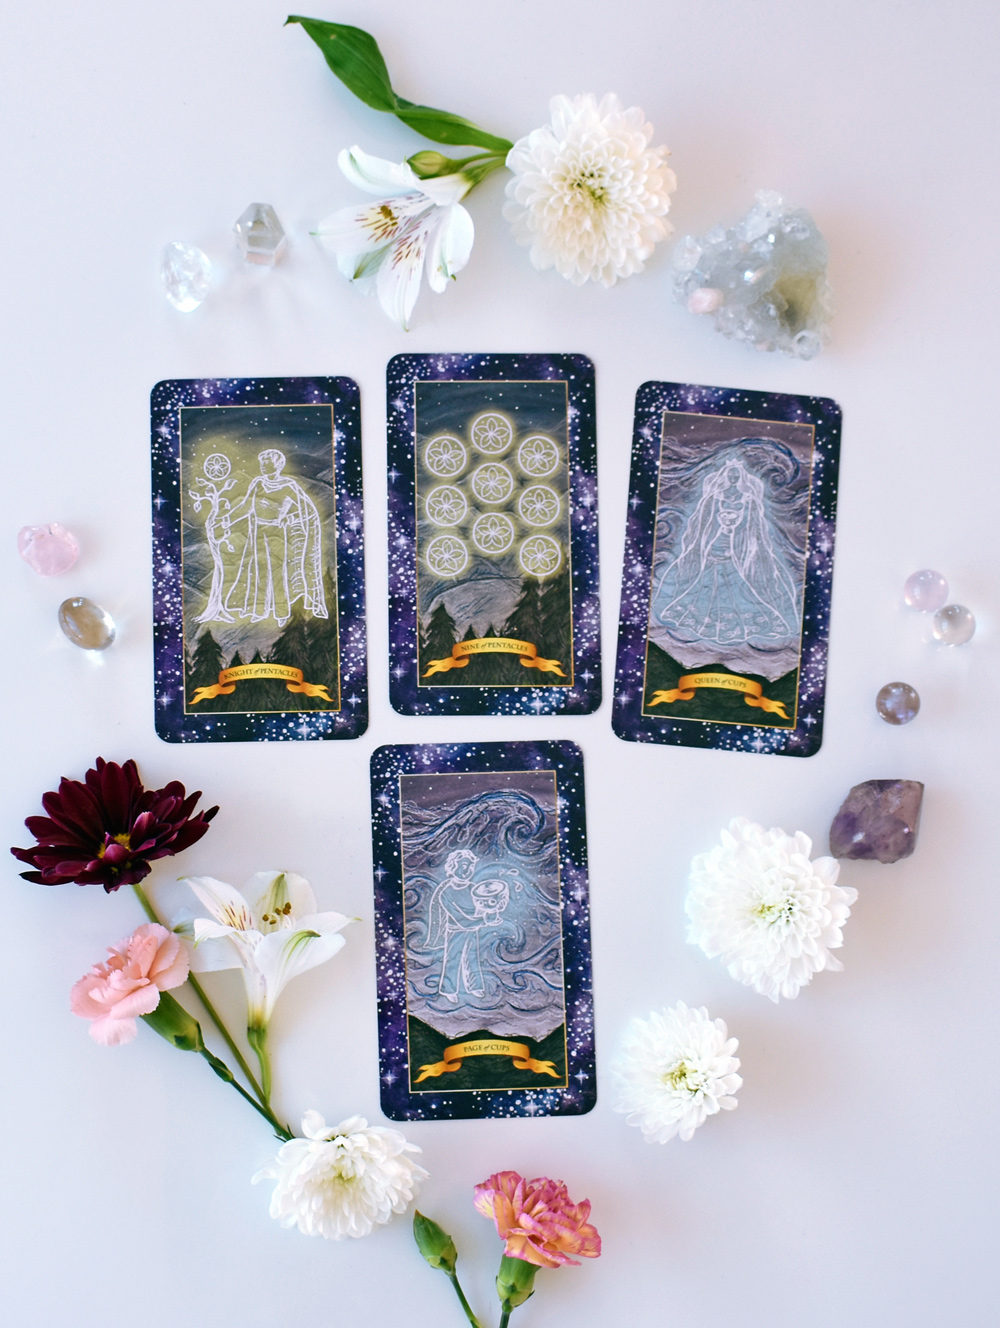 Spread for spring 2018 reading with the Constellation Tarot cards.